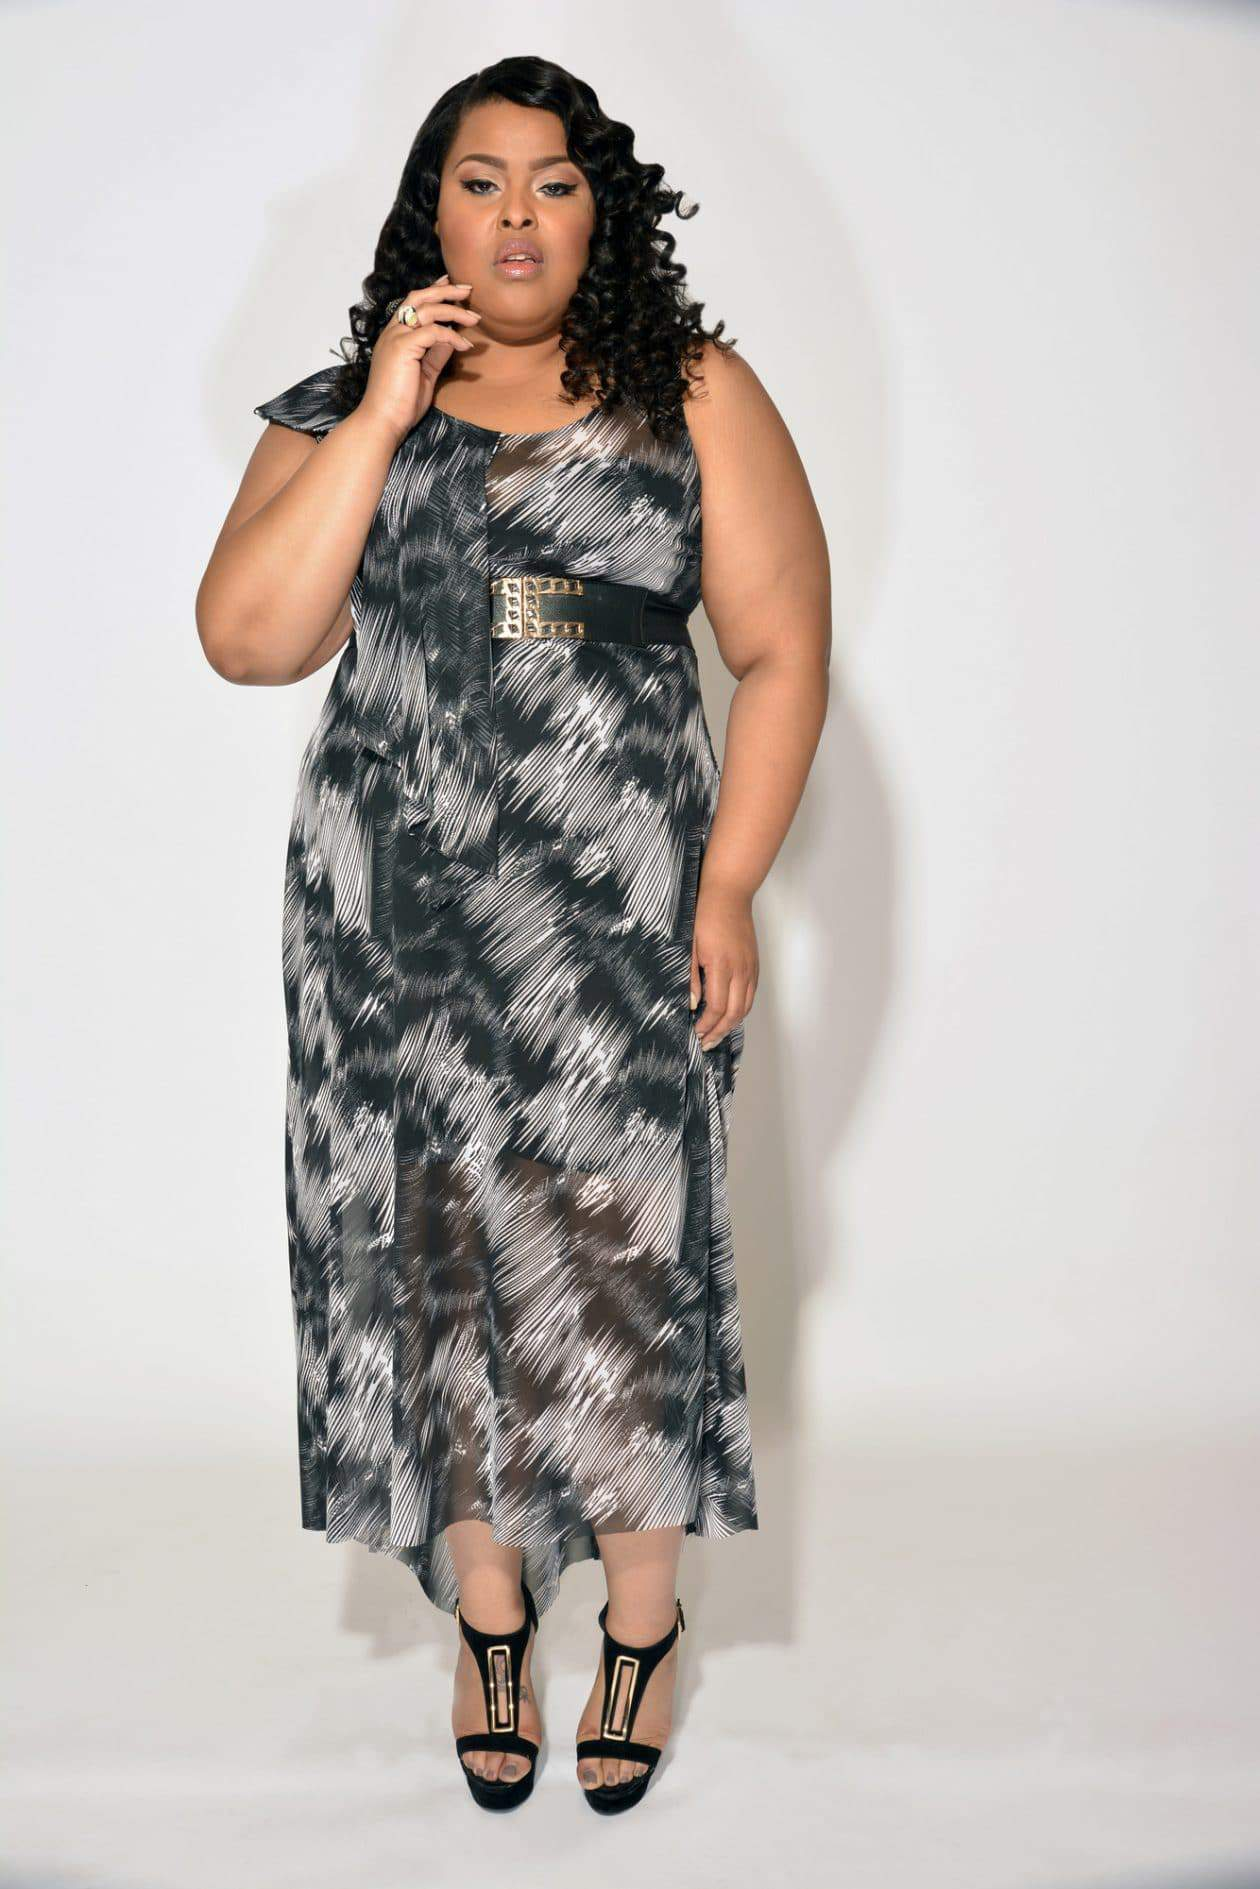 Plus Size Designer Christian Ome'shun: Urbane Chic Collection on TheCurvyFashionista.com